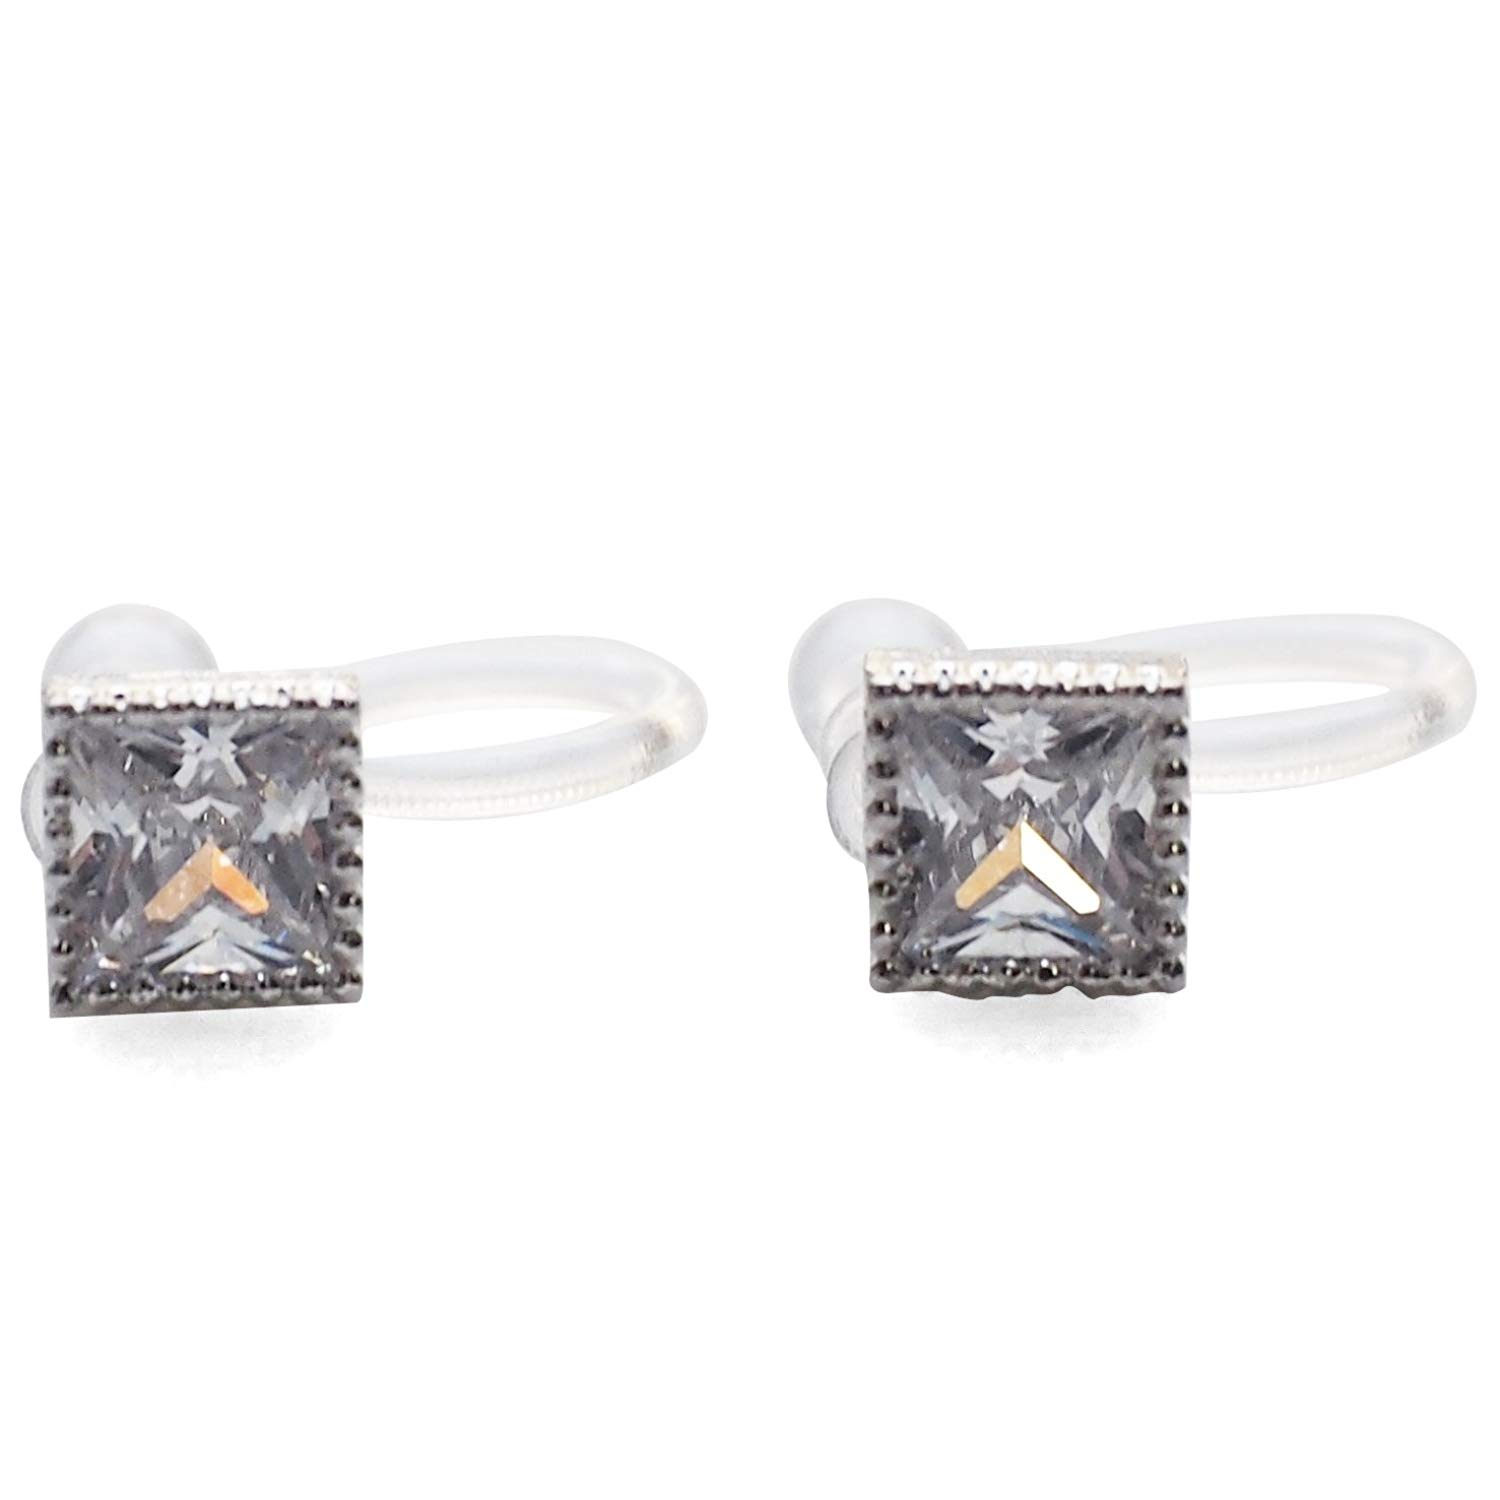 Miyabi Grace Women's Square Minimalist Comfortable Simple Cubic Zirconia Crystal Invisible Clip On Stud Earrings Silver tone